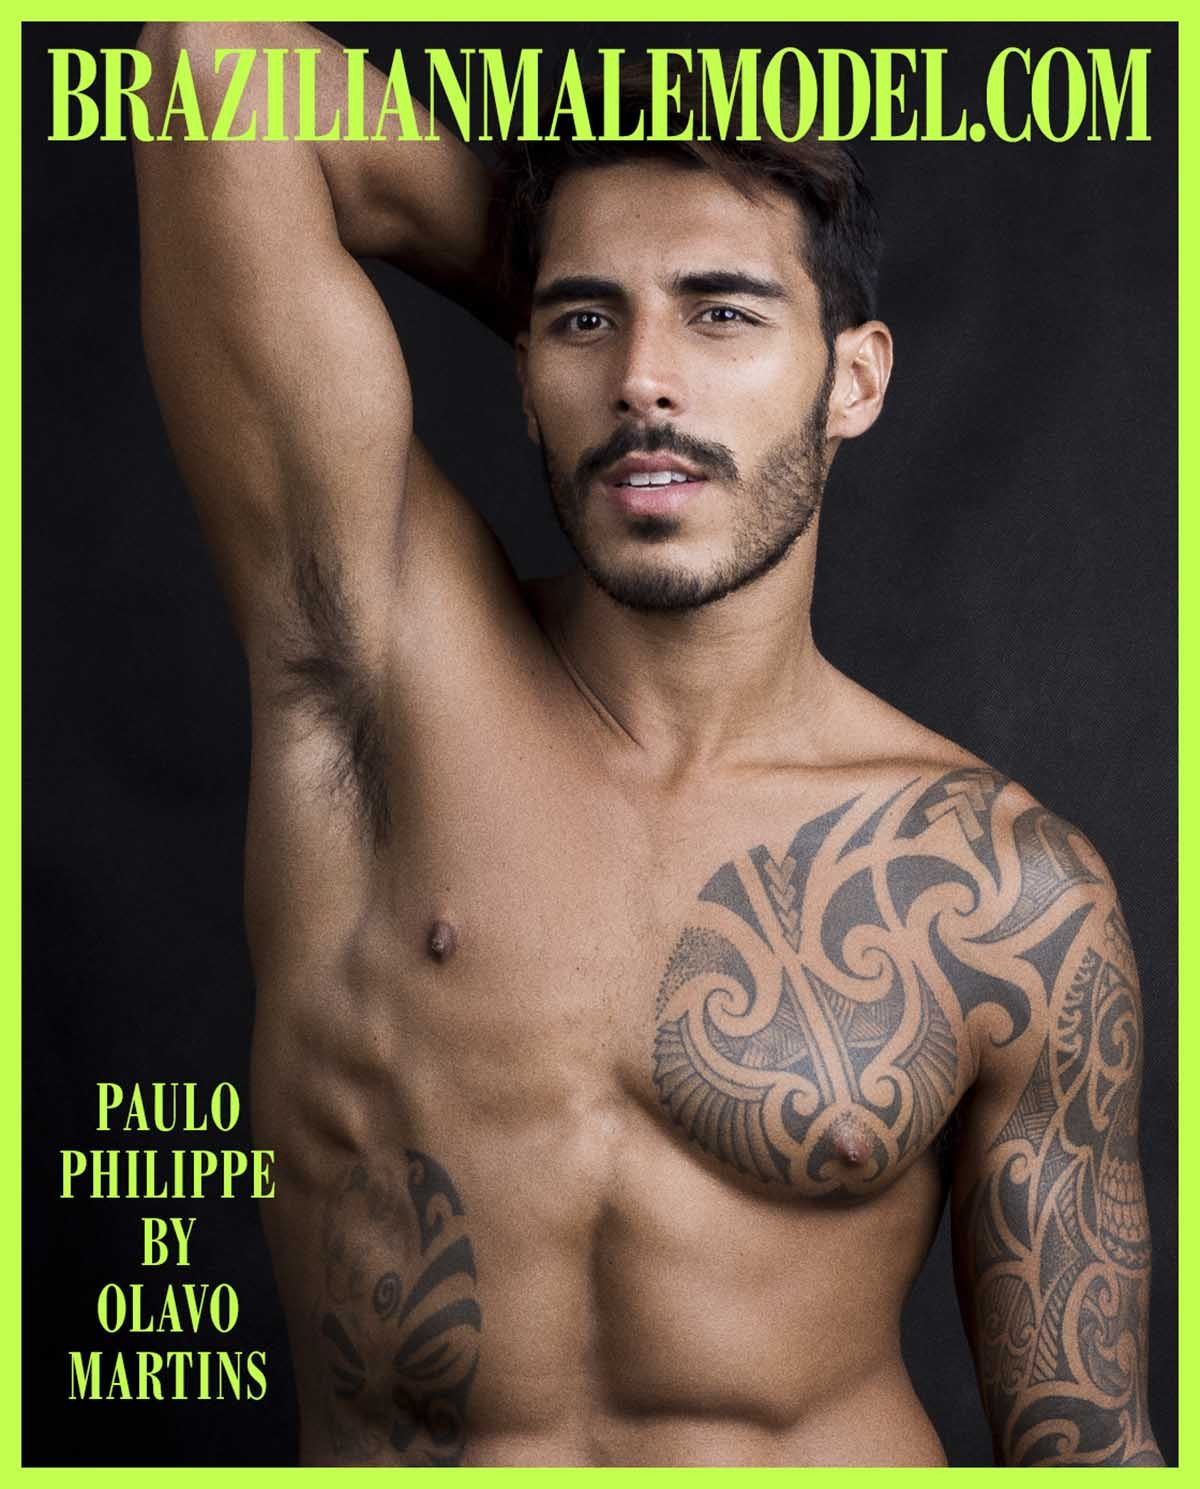 Paulo Philippe by Olavo Martins